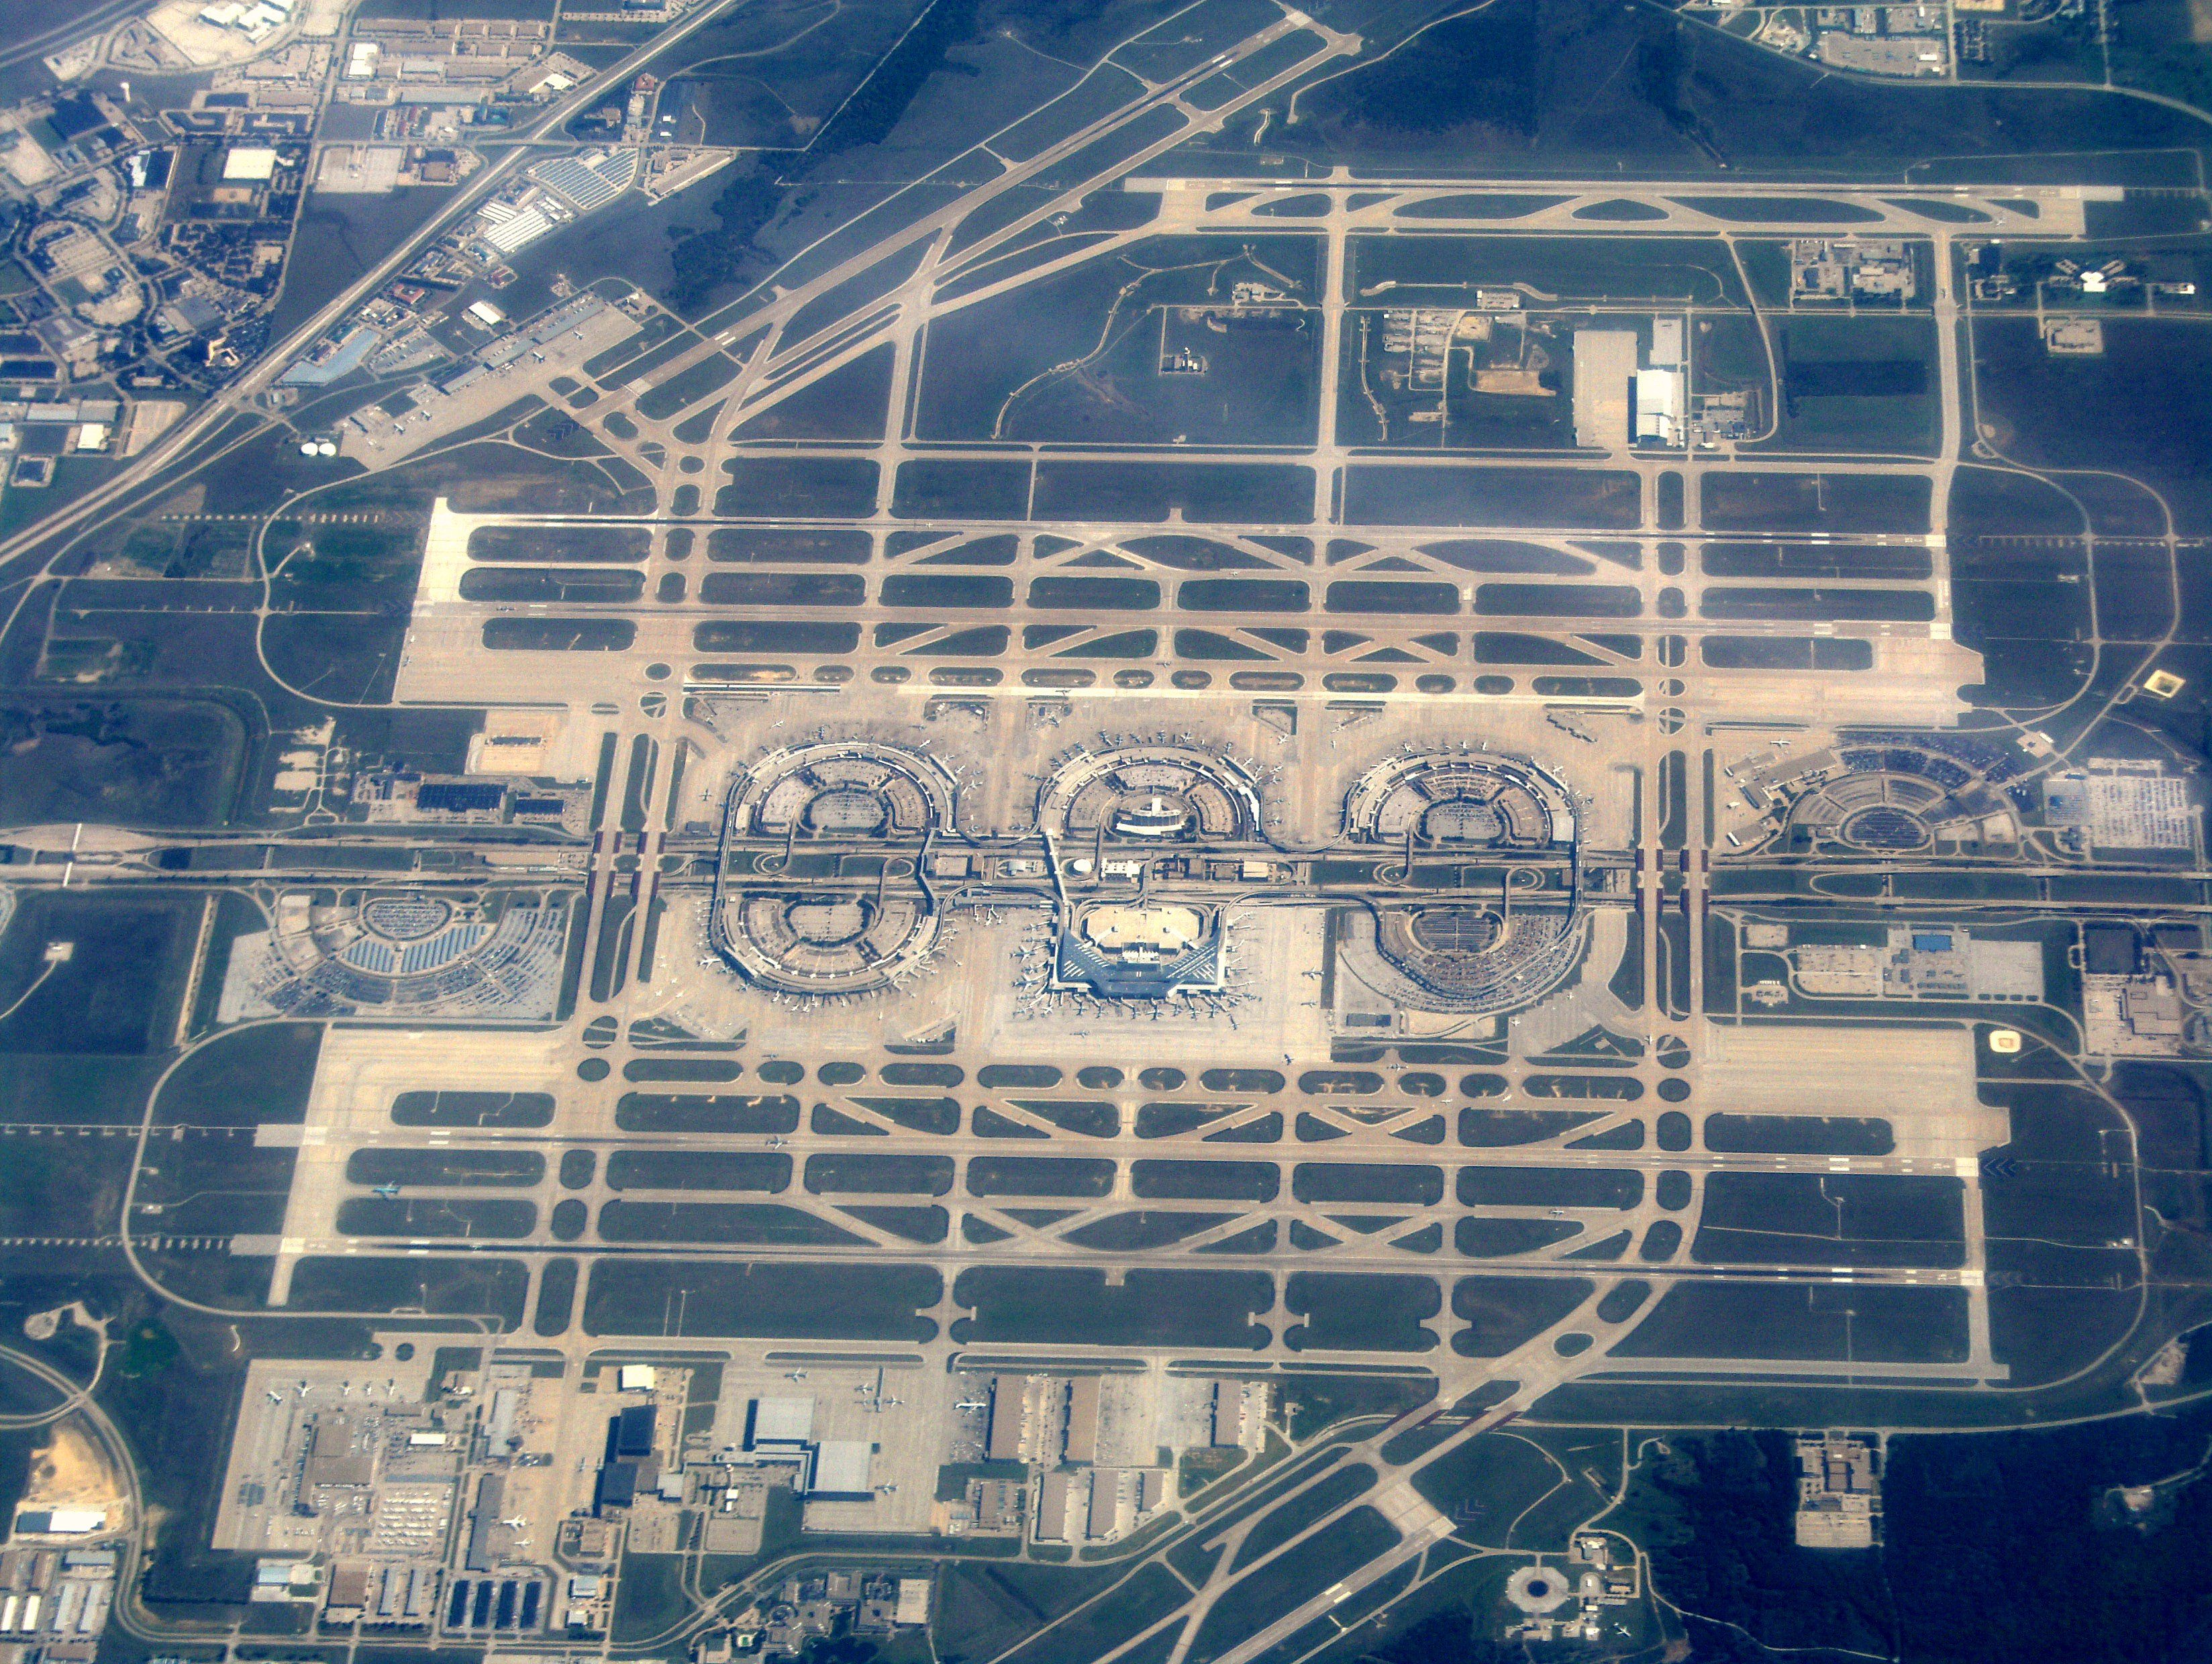 Dfw International Airport Only Land Here Once In Dsc S G 3 Dallas Fort Worth International Airport International Airport Airport